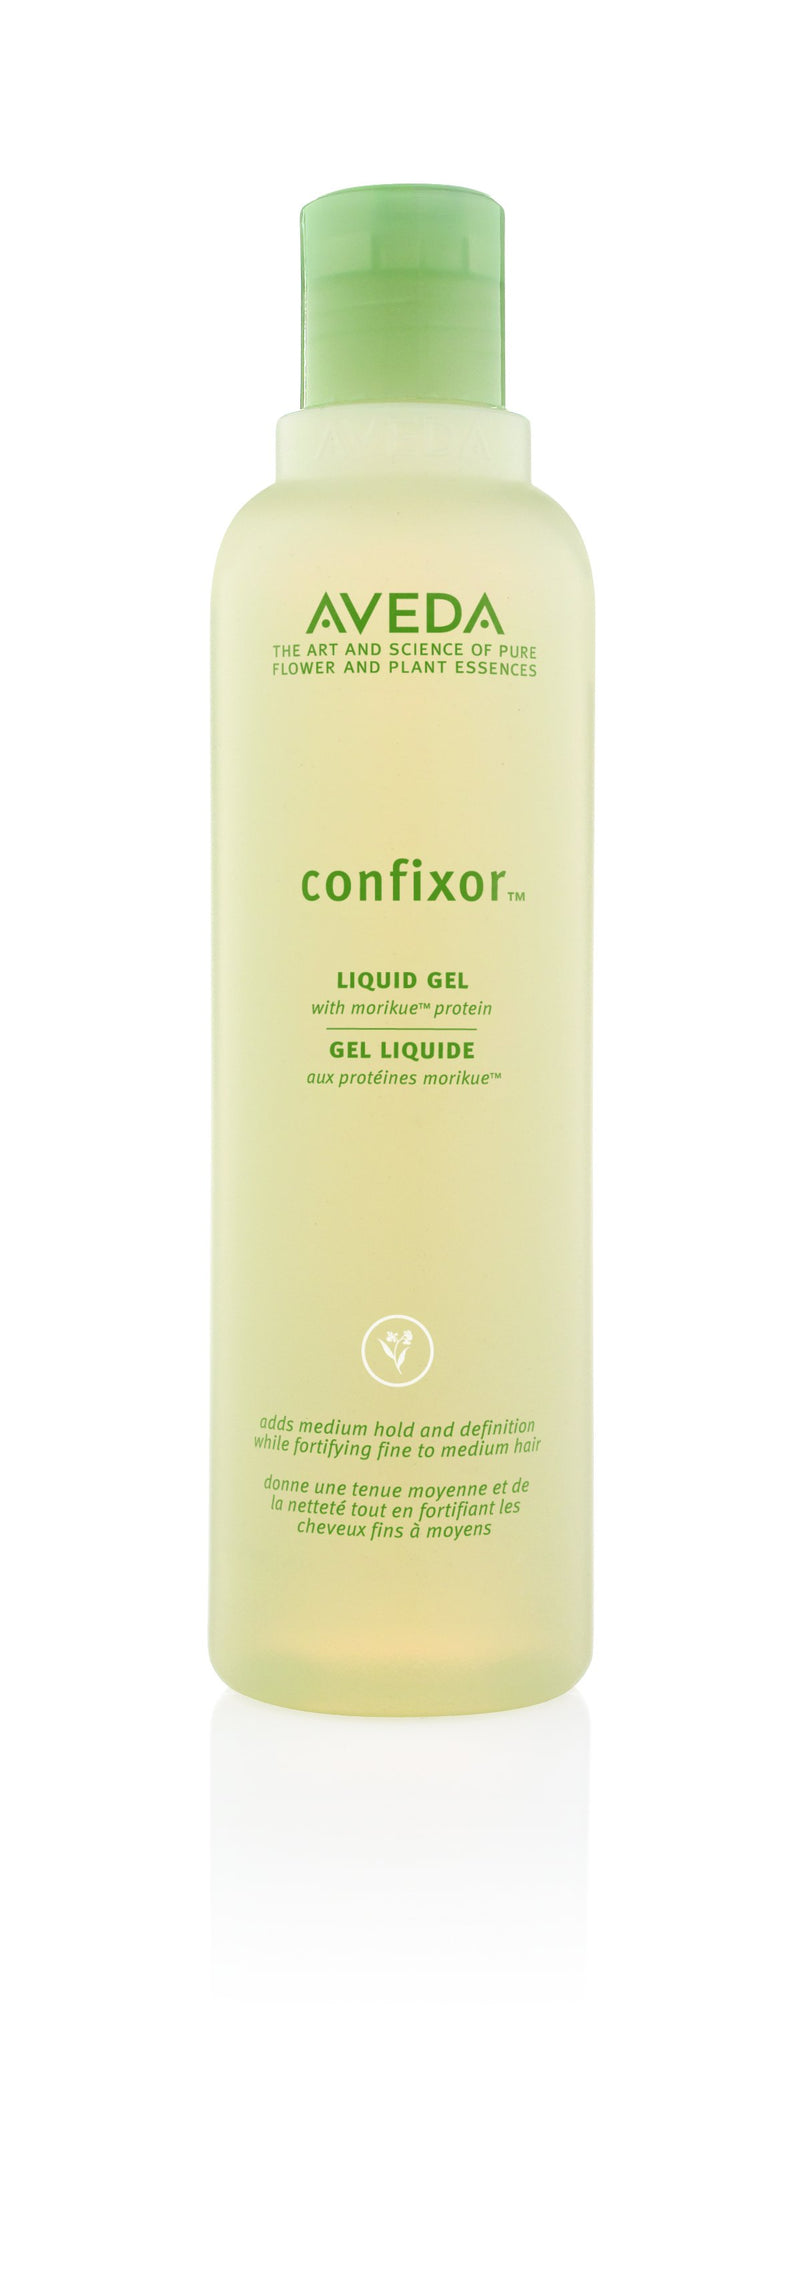 confixor™ liquid gel